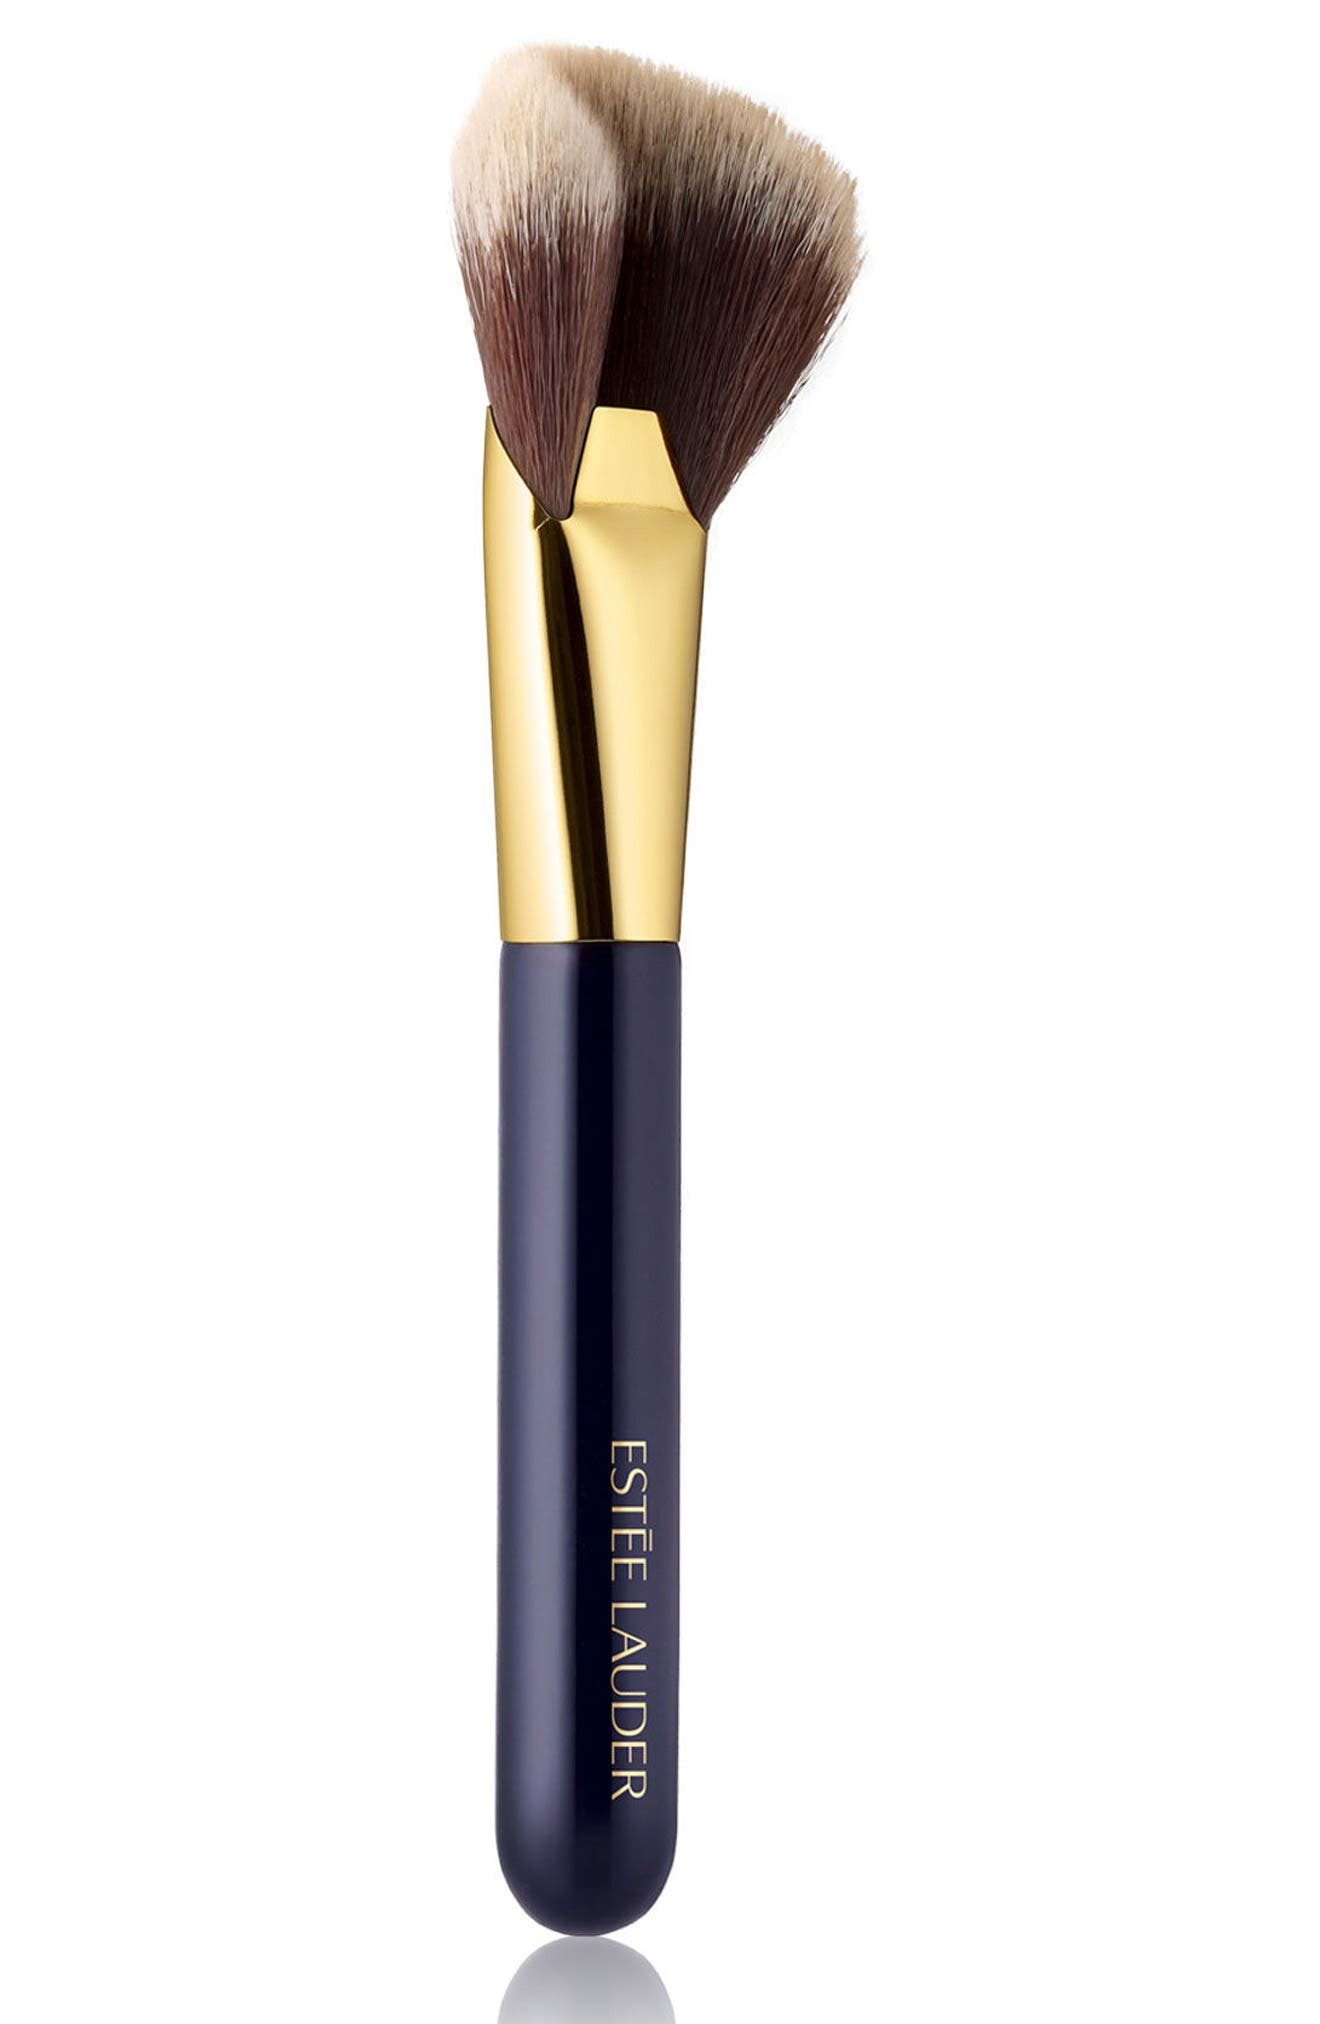 Defining Powder Brush,                             Main thumbnail 1, color,                             NO COLOR